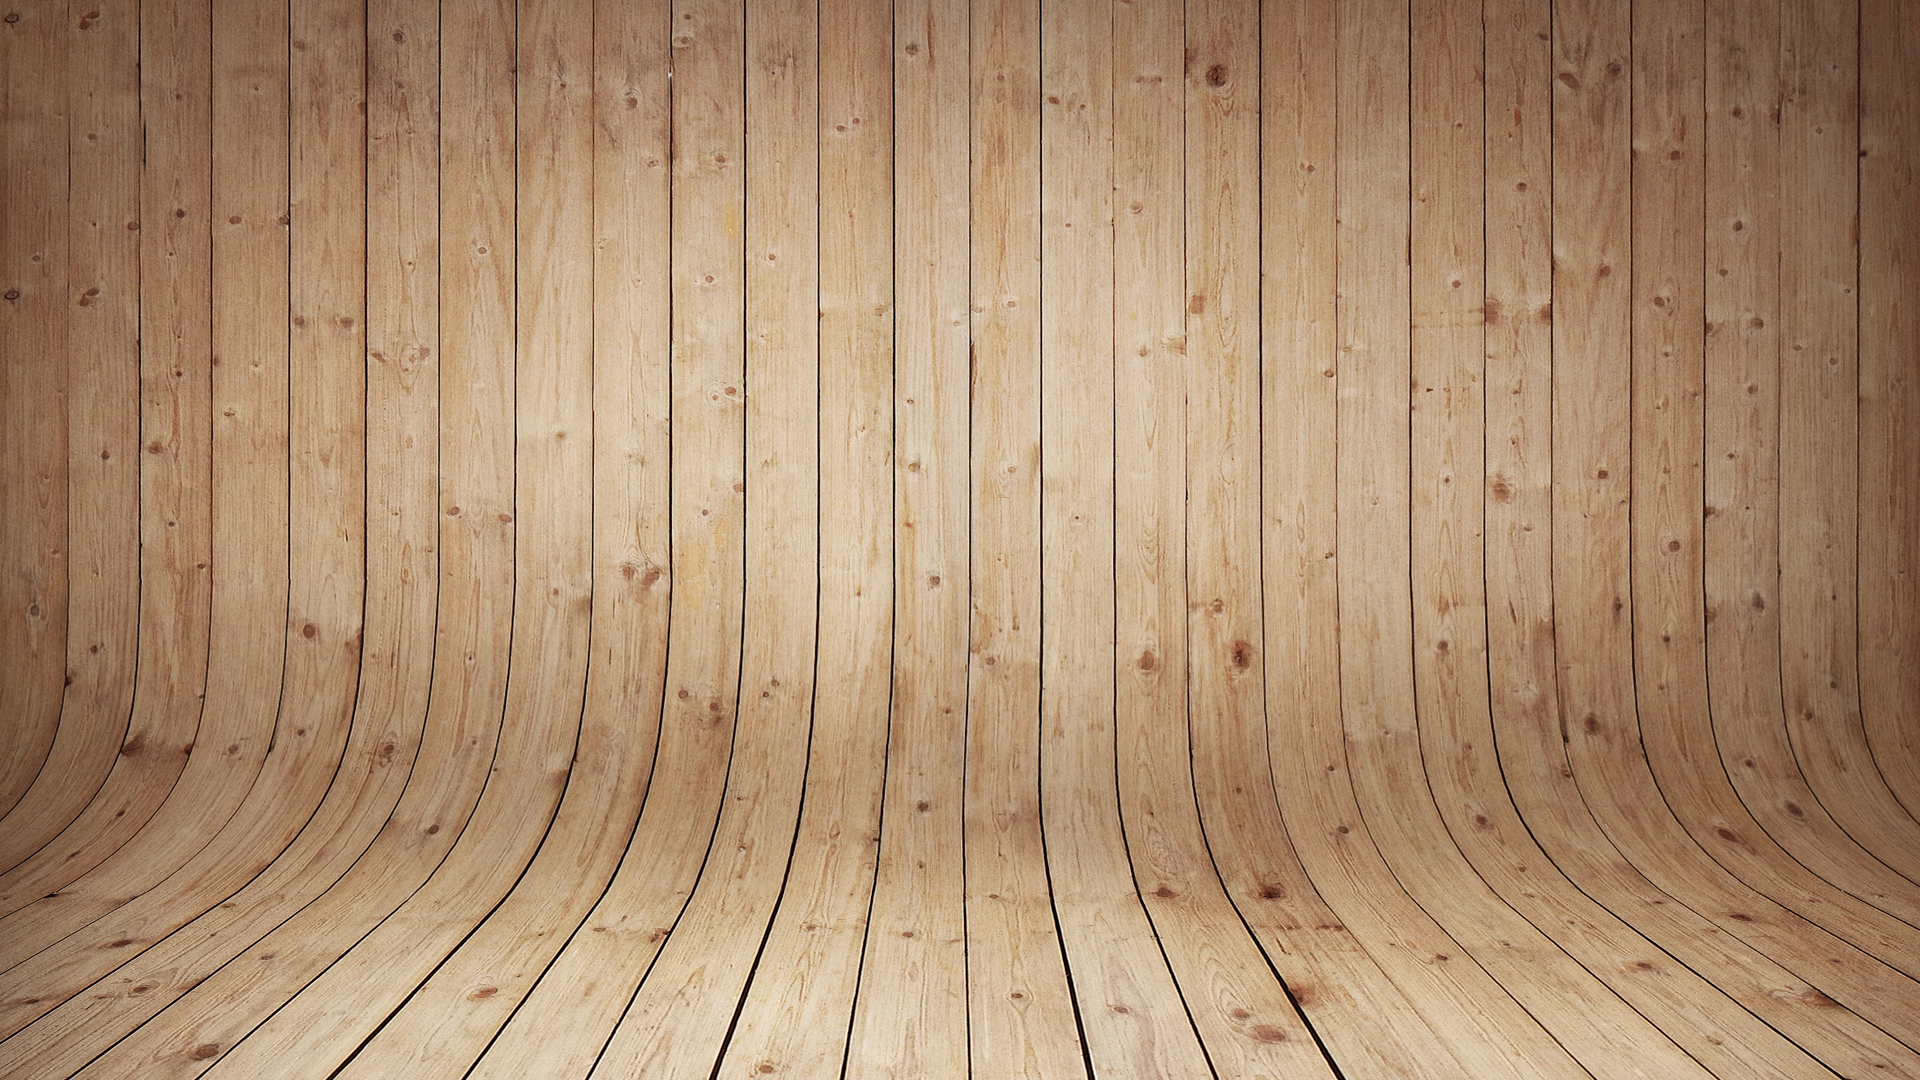 Wooden Desktop Desktop Wood Wallpaper Hd Downloadwallpaper Org